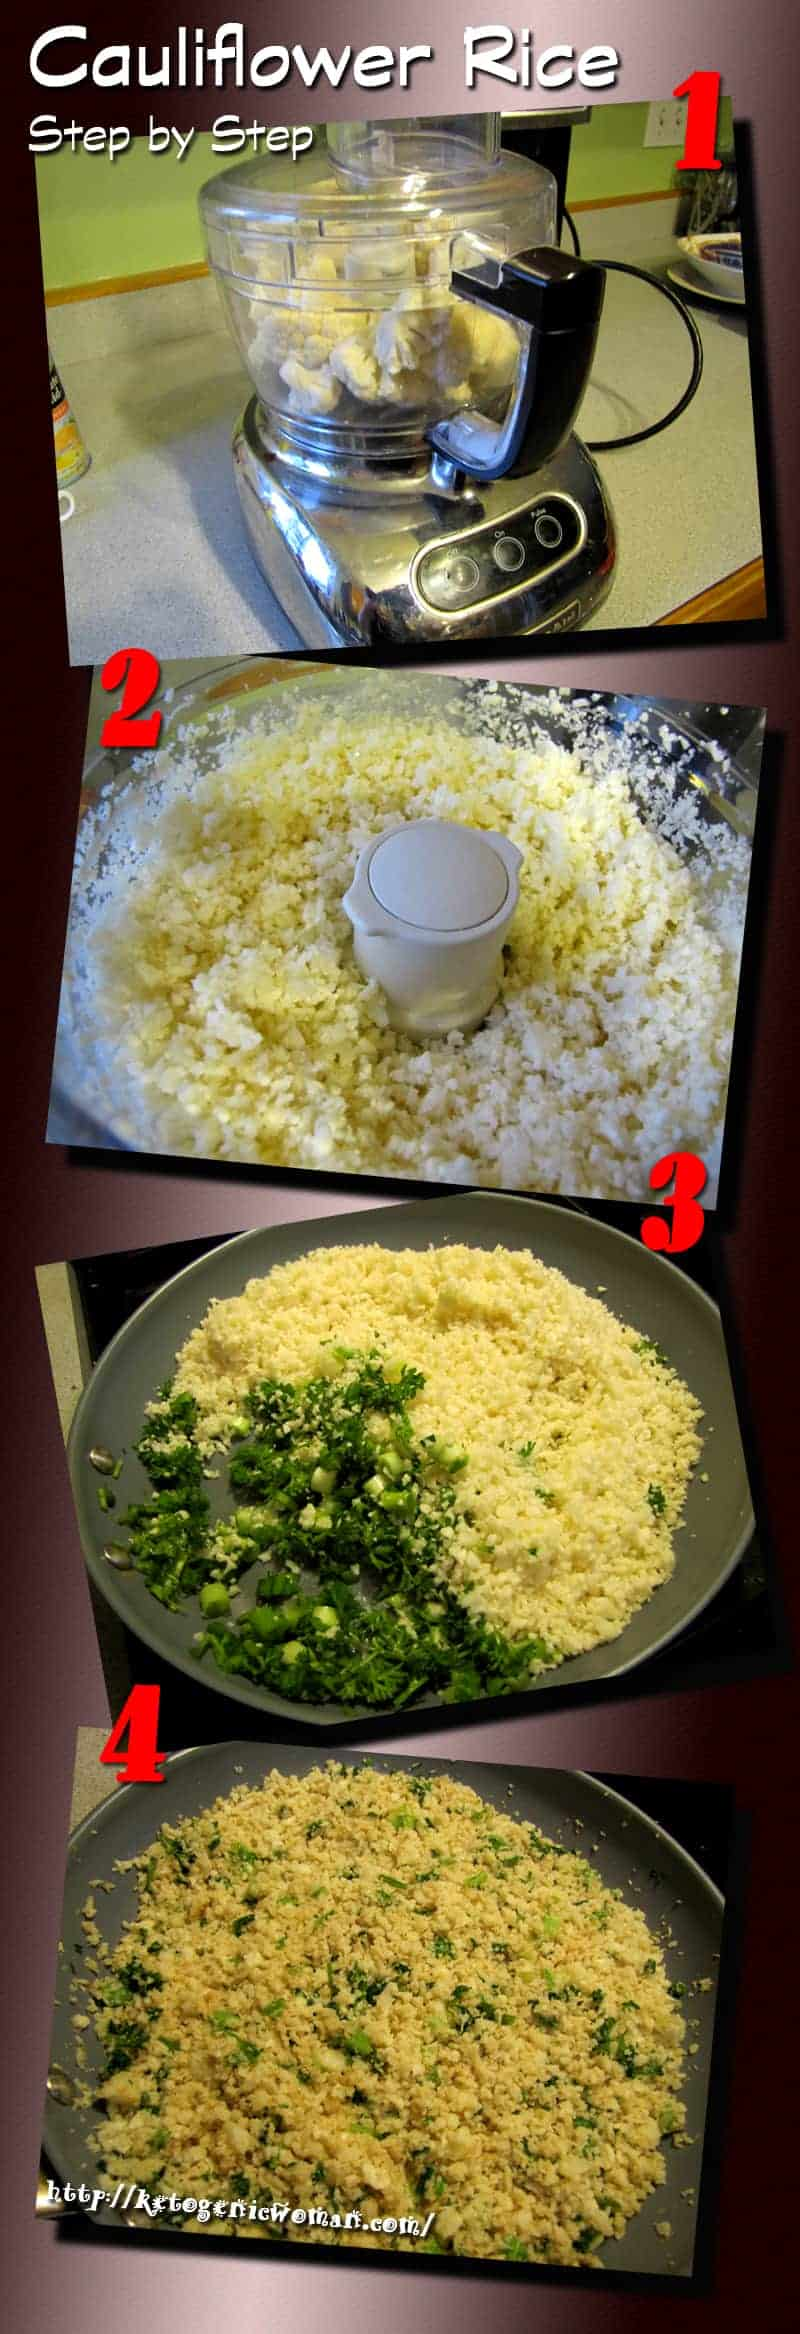 Cauliflower Rice and Potatoes Tutorial - Low Carb and Gluten Free ...